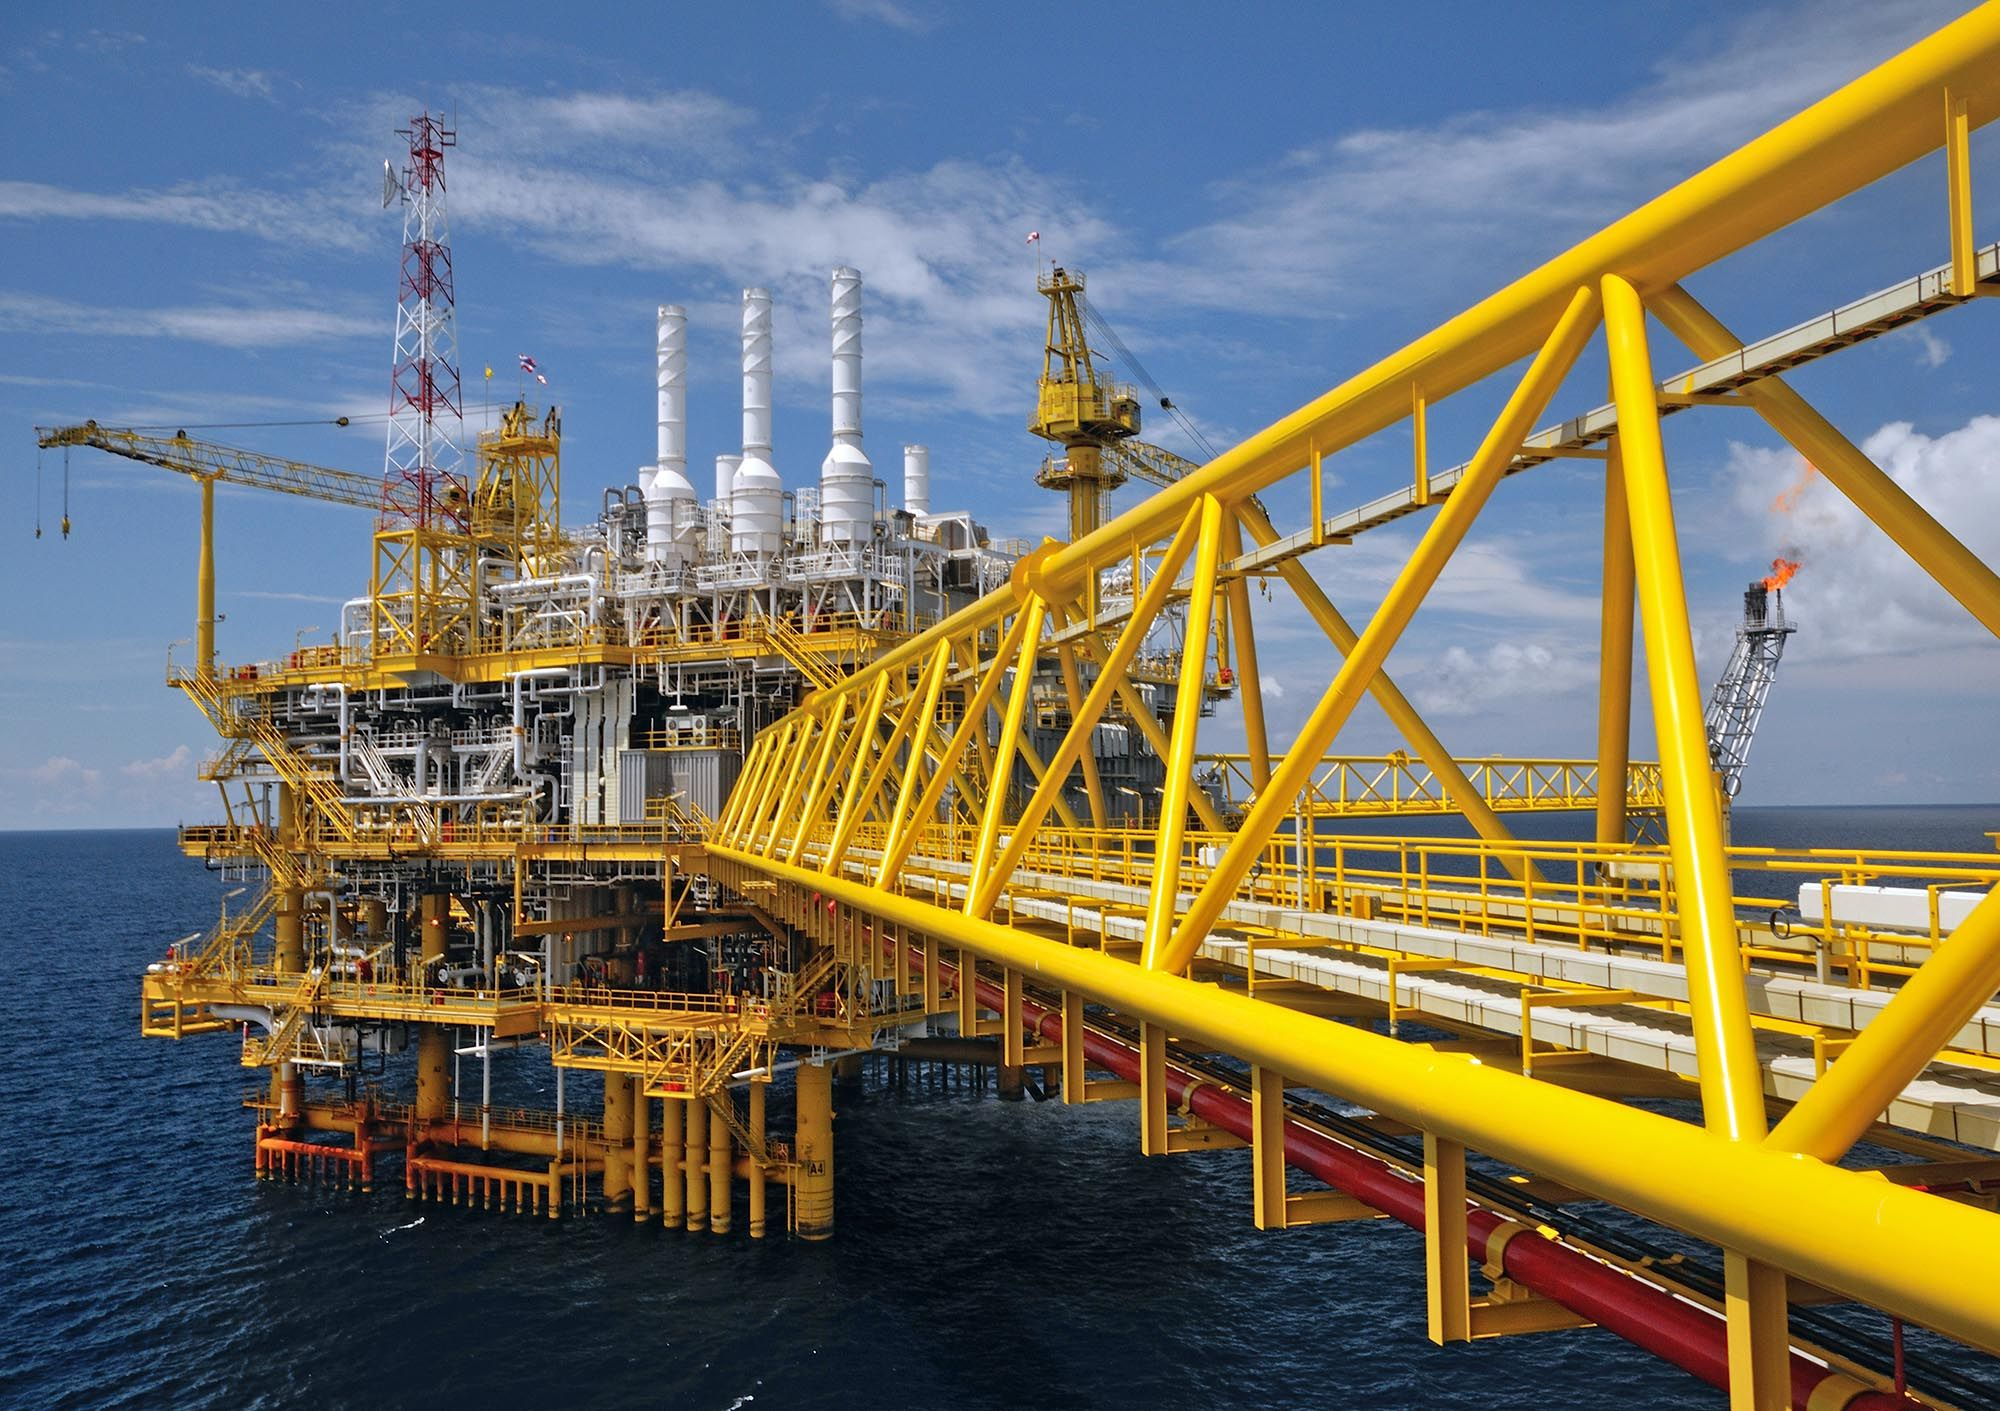 Improving safety and productivity in oil and gas operations